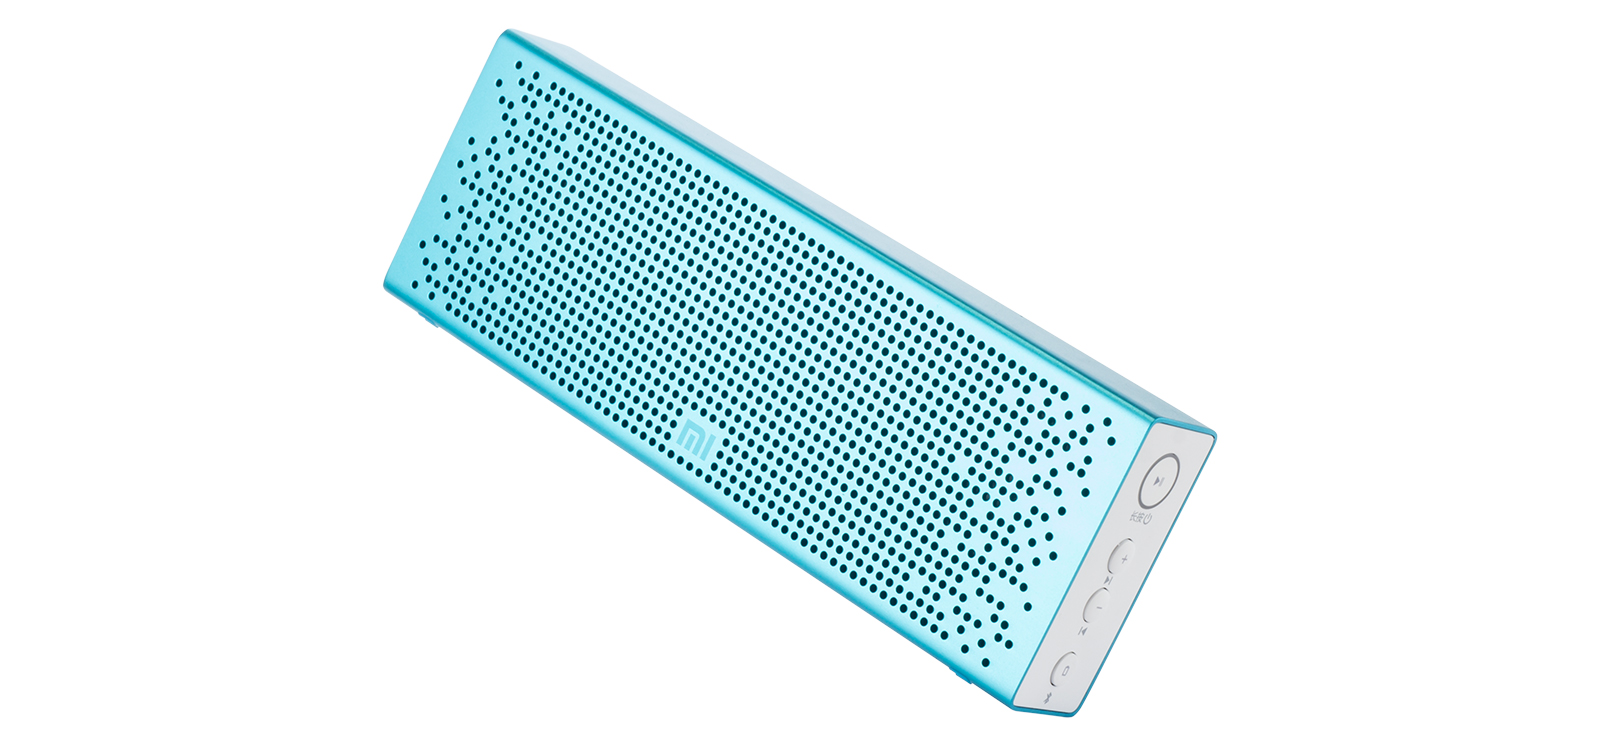 Портативная колонка Xiaomi Mi Bluetooth Speaker Blue портативная колонка fender monterey bluetooth speaker black silver